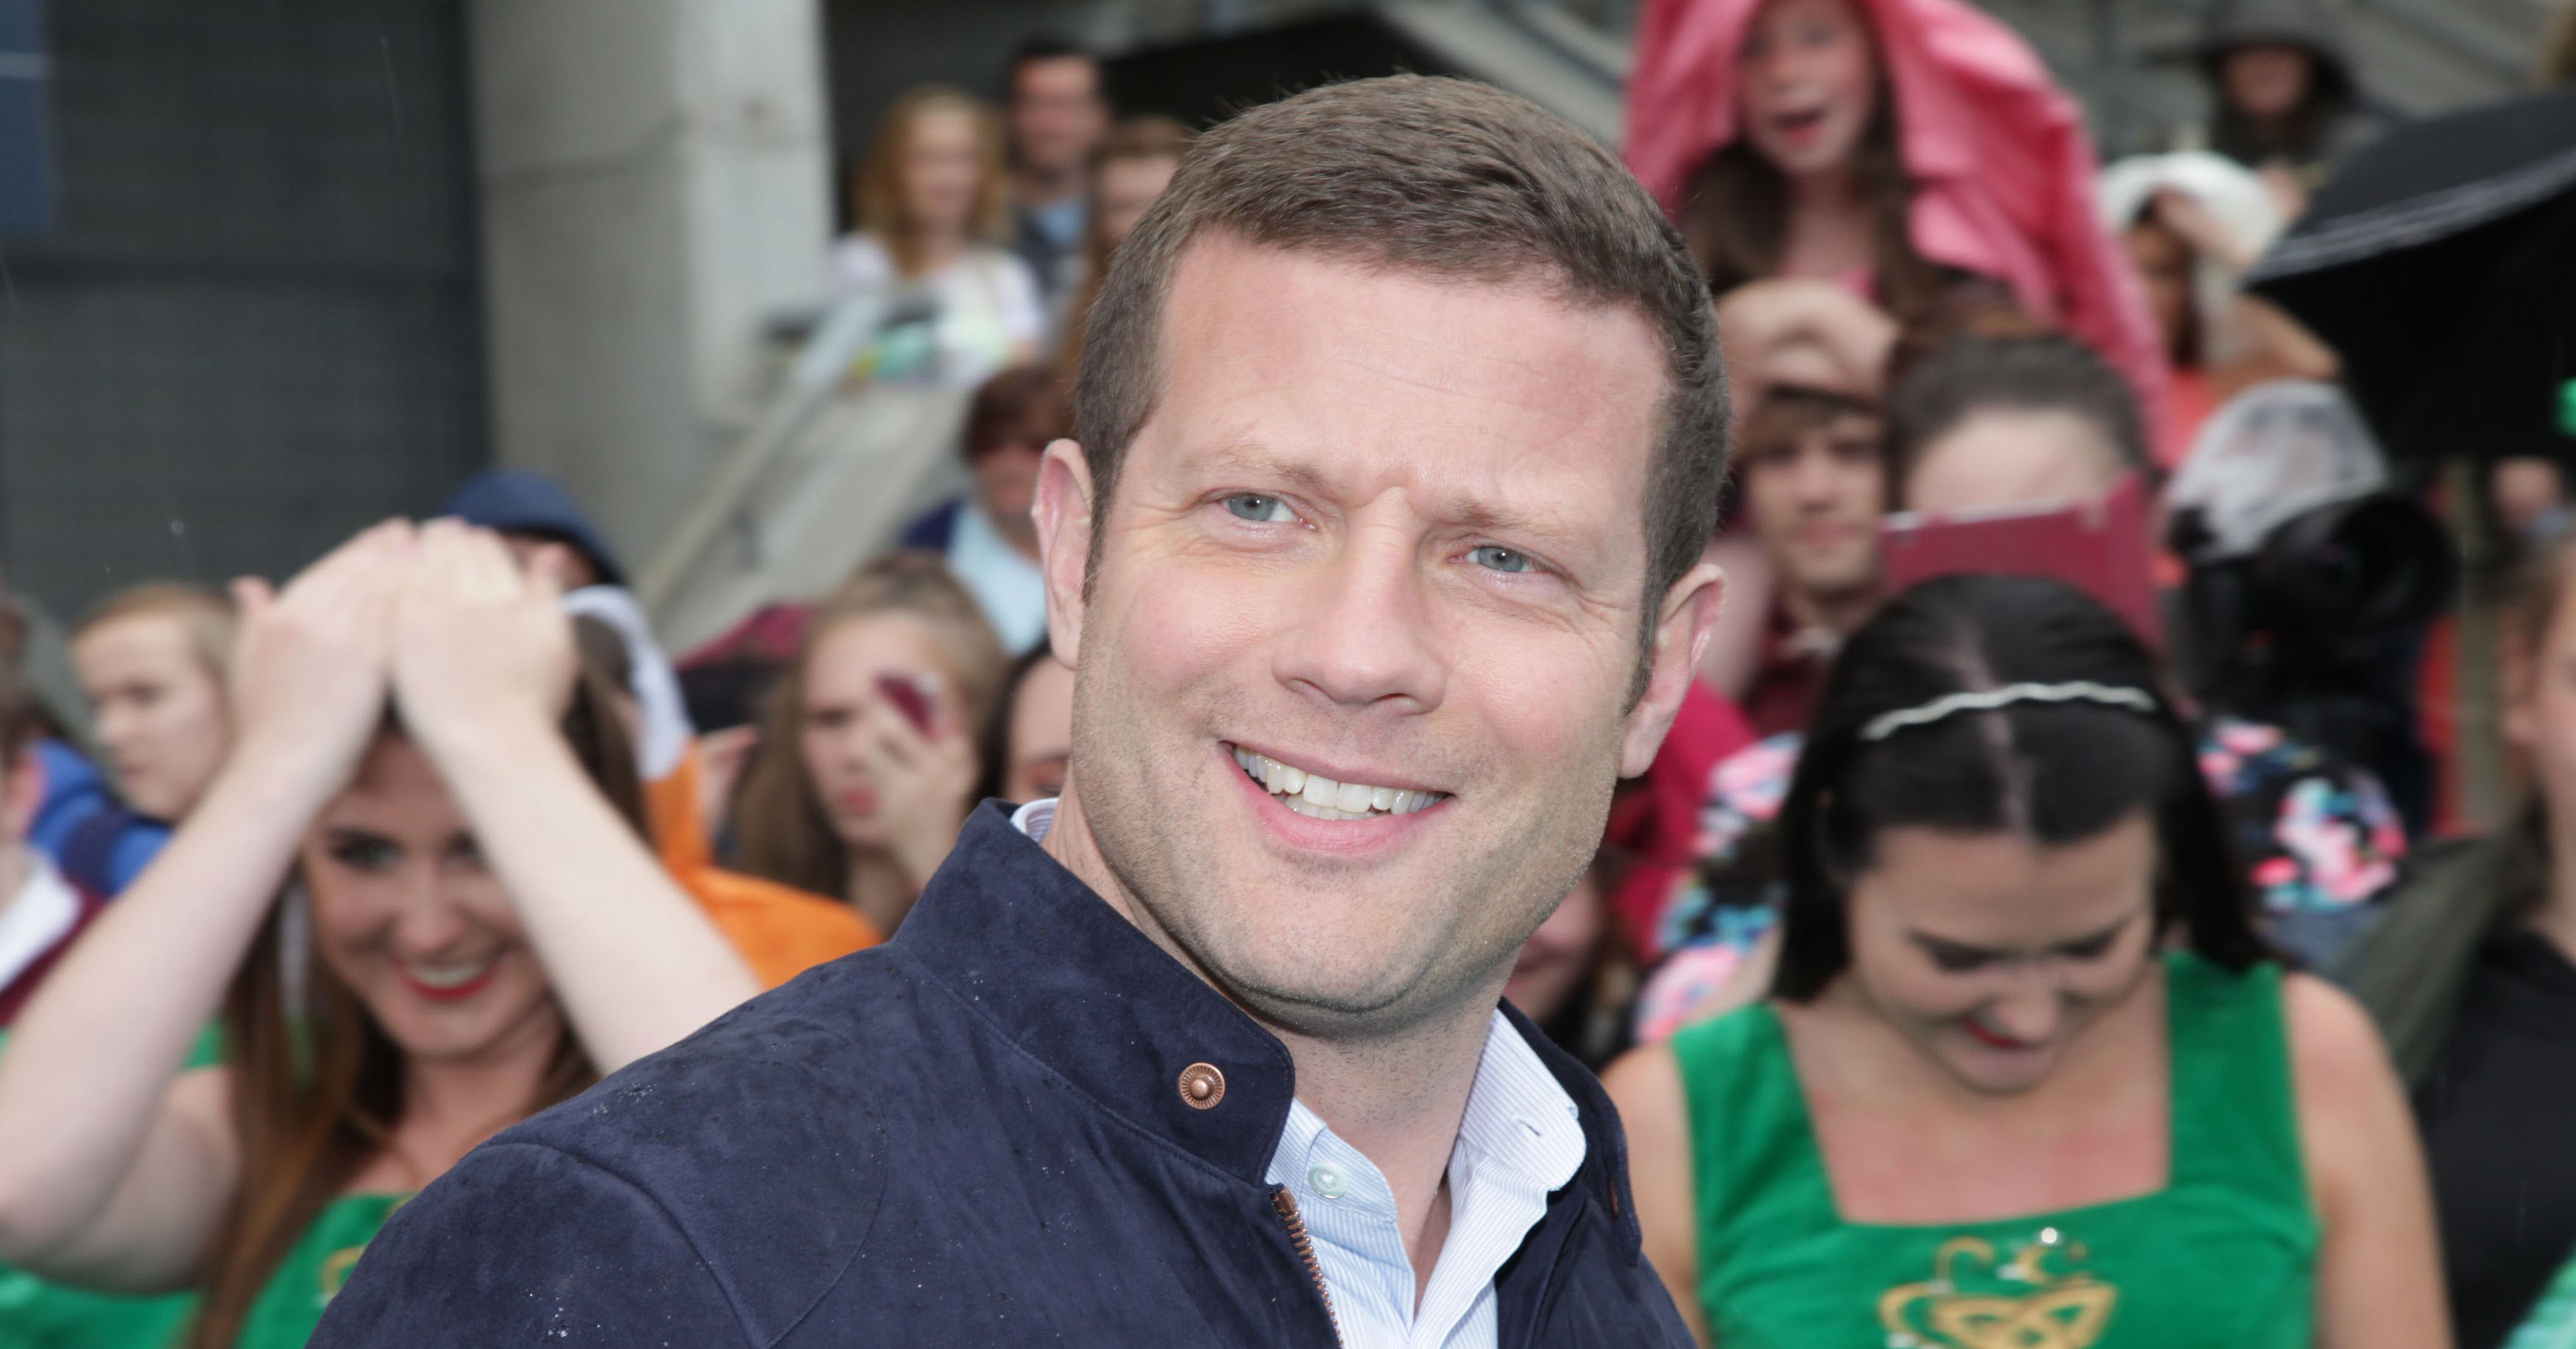 Dermot O'Leary in Dublin for 2016 auditions of The X Factor